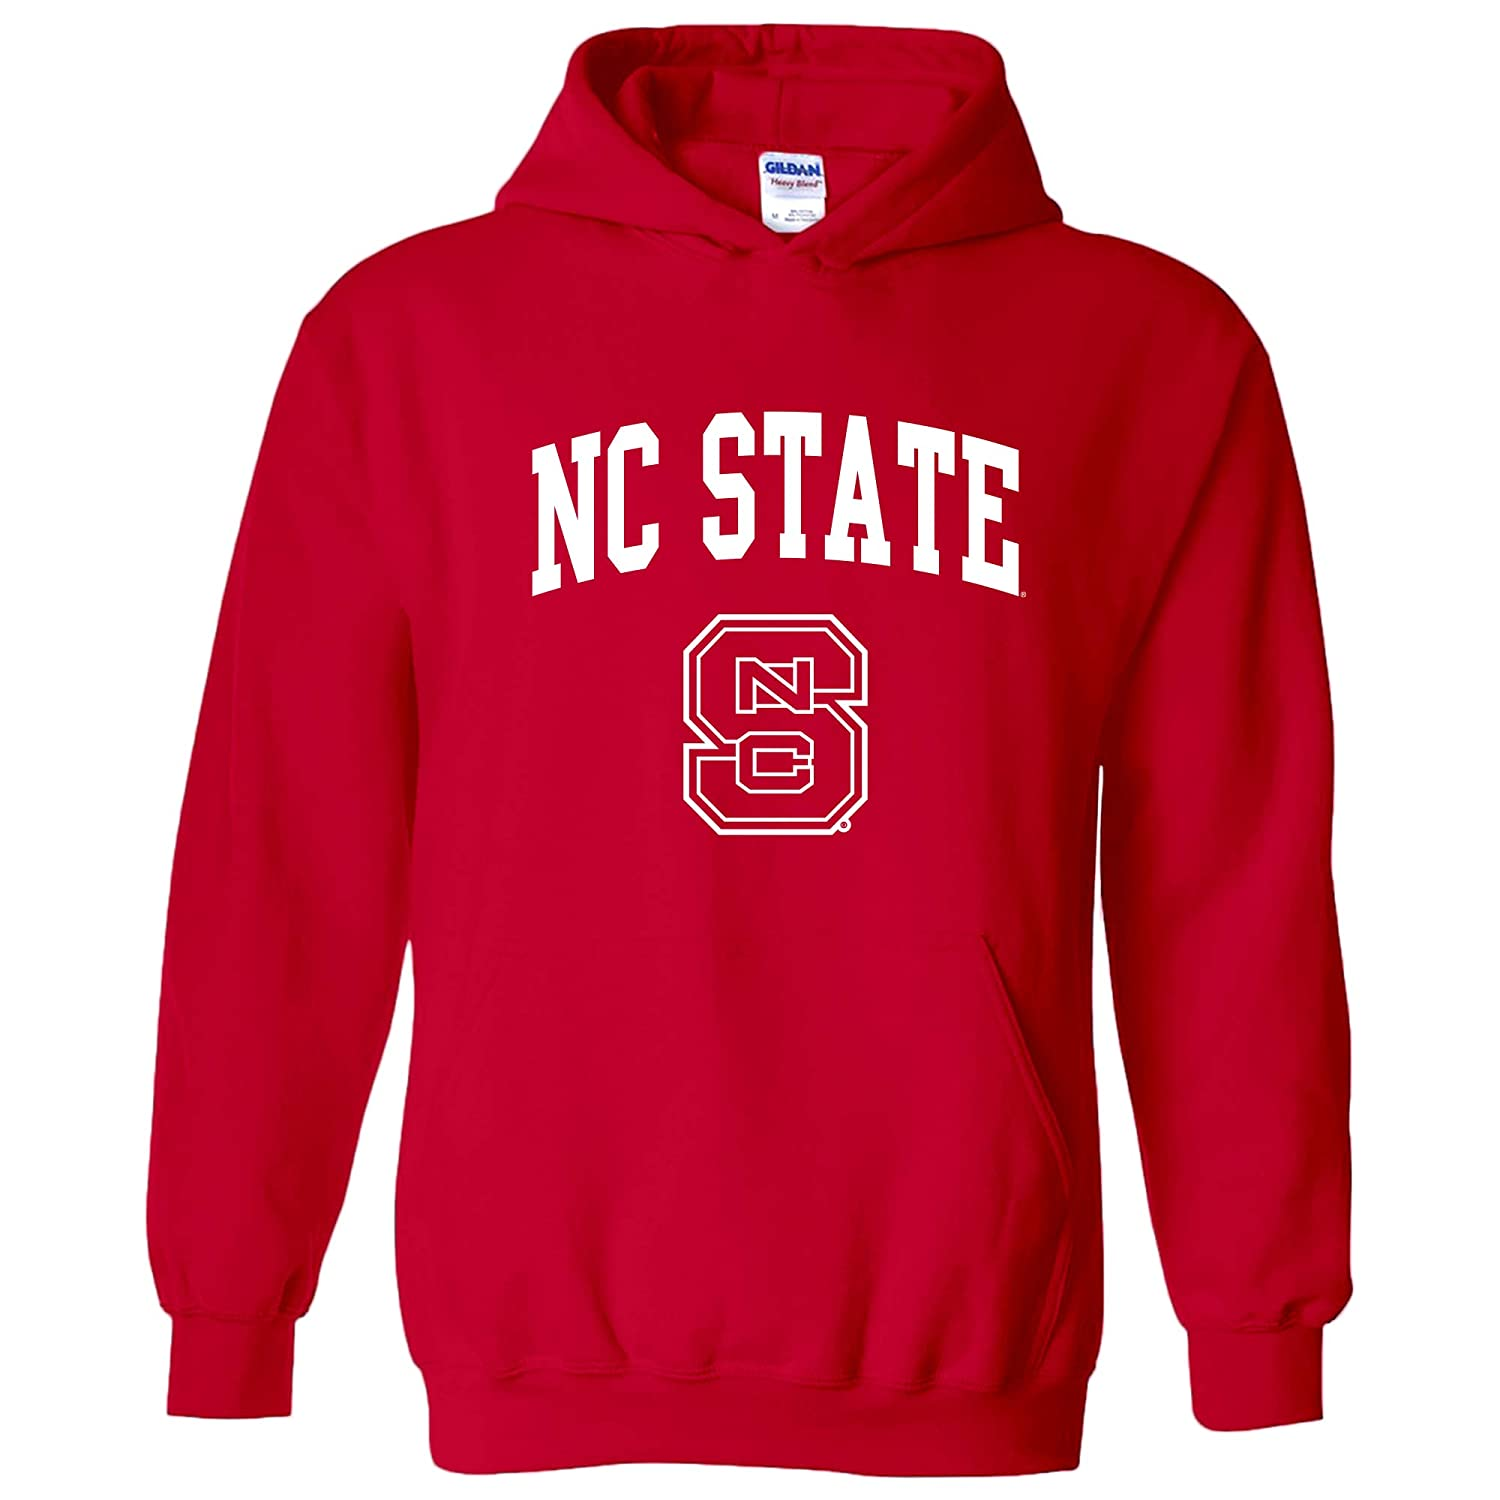 UGP Campus Apparel NCAA Officially Licensed College - University Team Color Arch Logo Hoodie